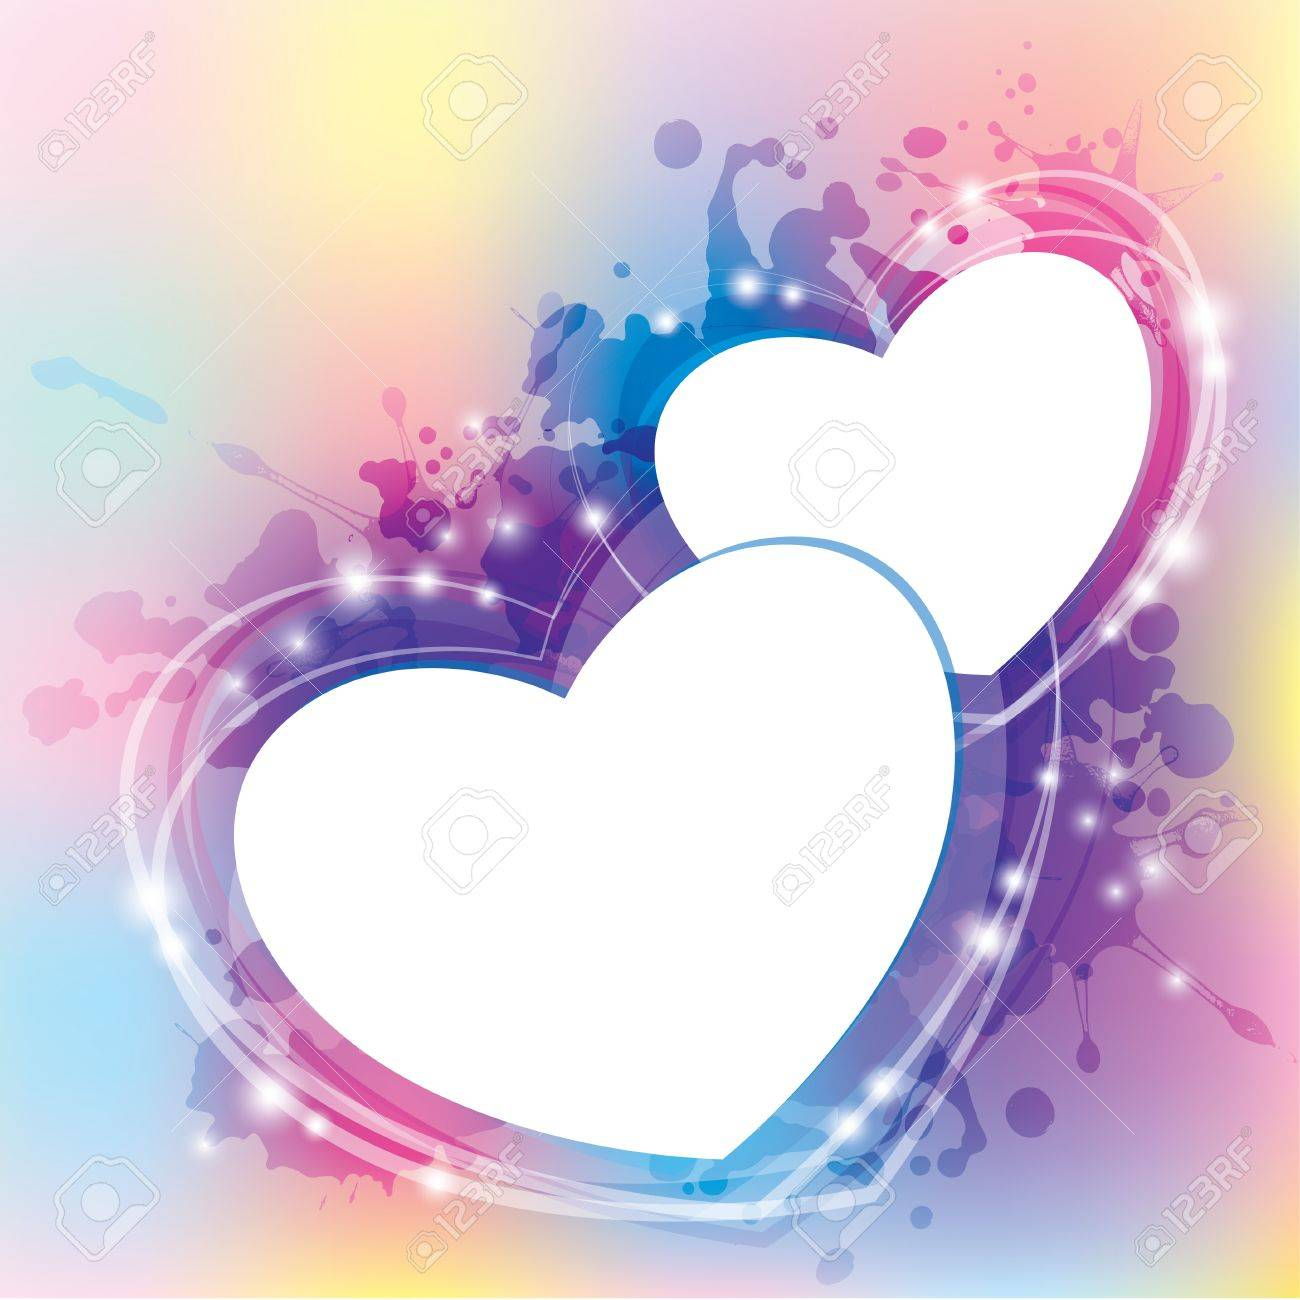 abstract background with hearts and blots. Stock Vector - 11172557